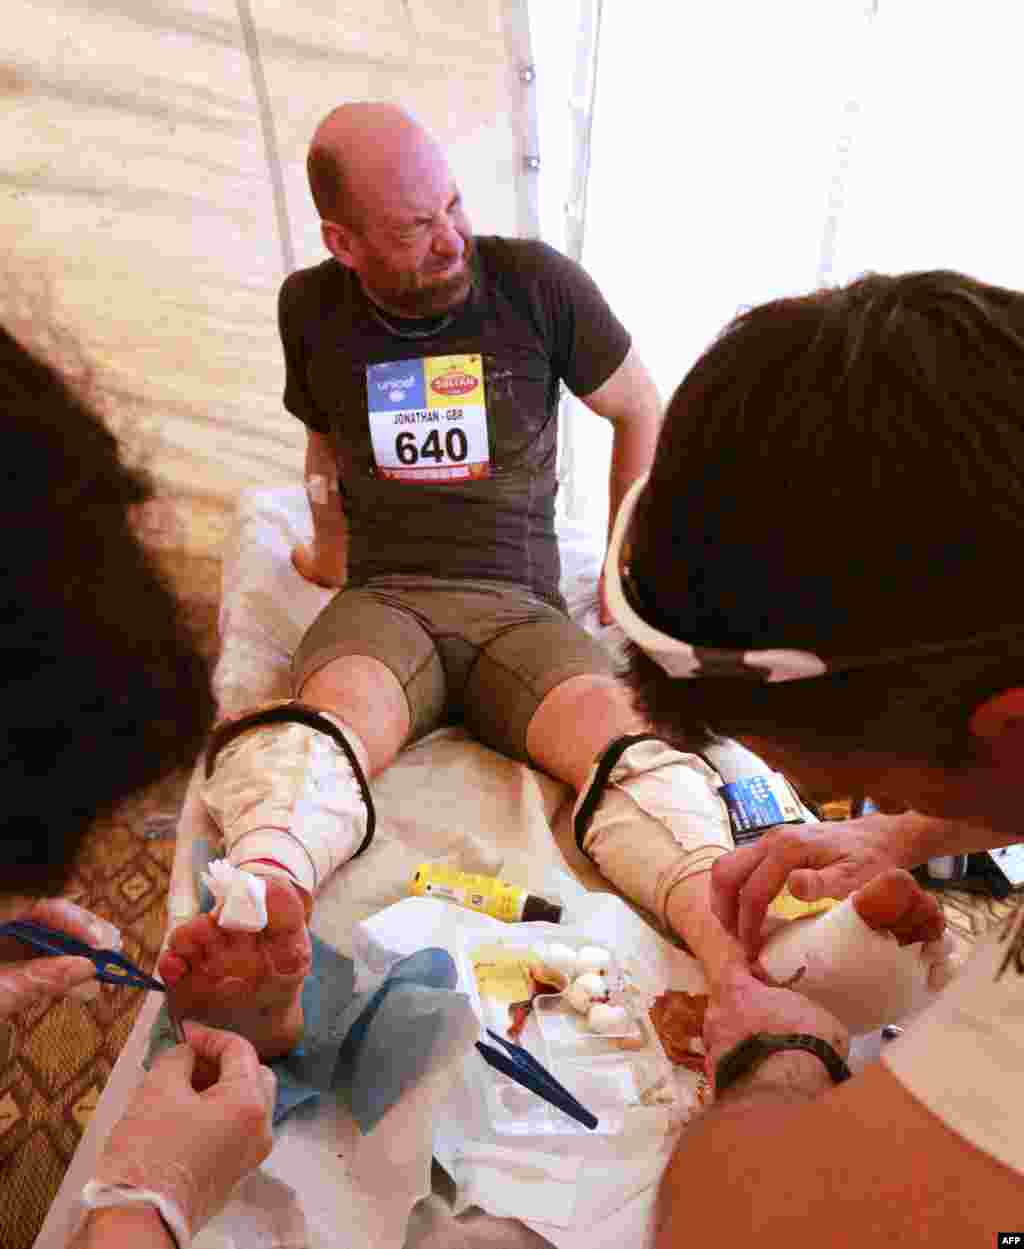 A competitor receives treatement on his feet during the 28th edition of the grueling 224-kilometer Marathon des Sables in Morocco. Competitors must carry all of their equipment on their backs during the seven-day race. Only carefully rationed bottles of water and open-sided local tents are provided by the organizers. (AFP/Pierre Verdy)